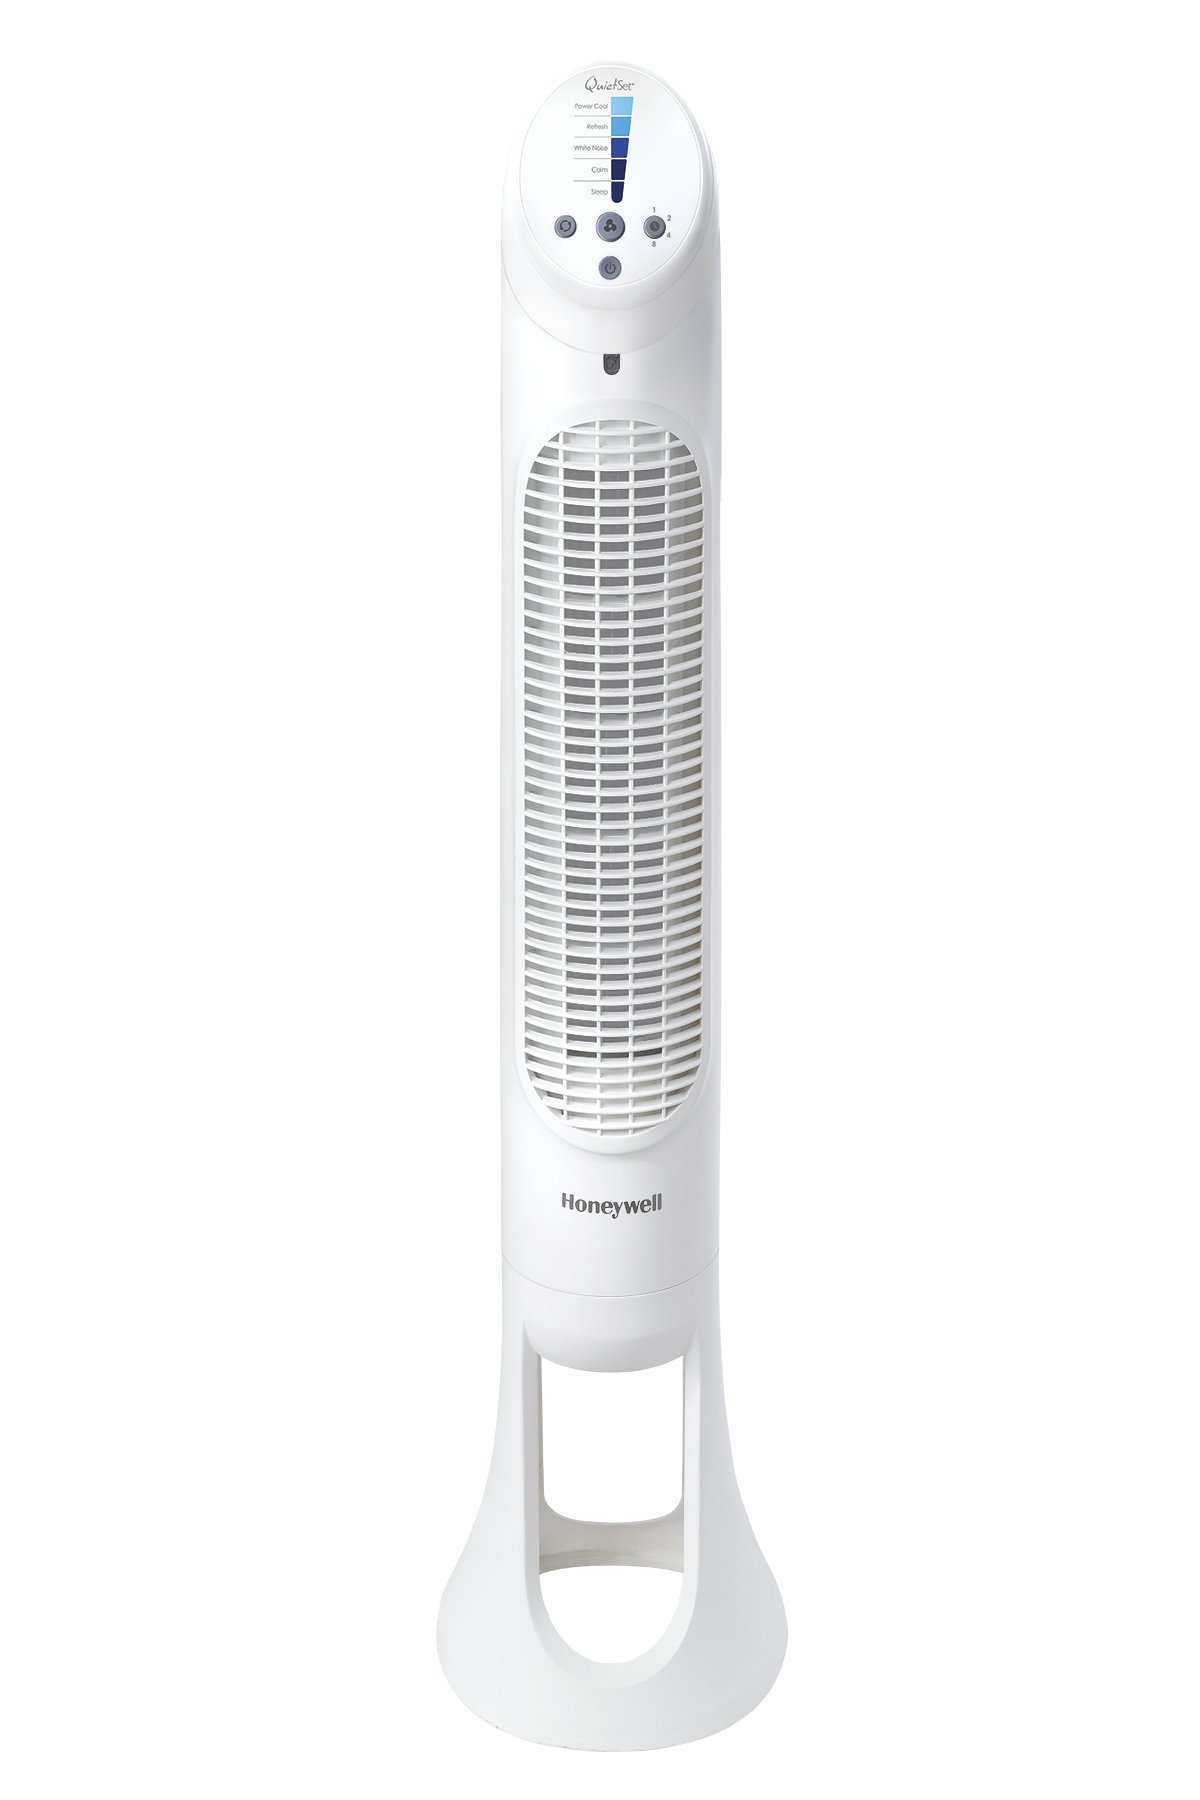 Honeywell Quiet Set Whole Room Tower Fan by Honeywell